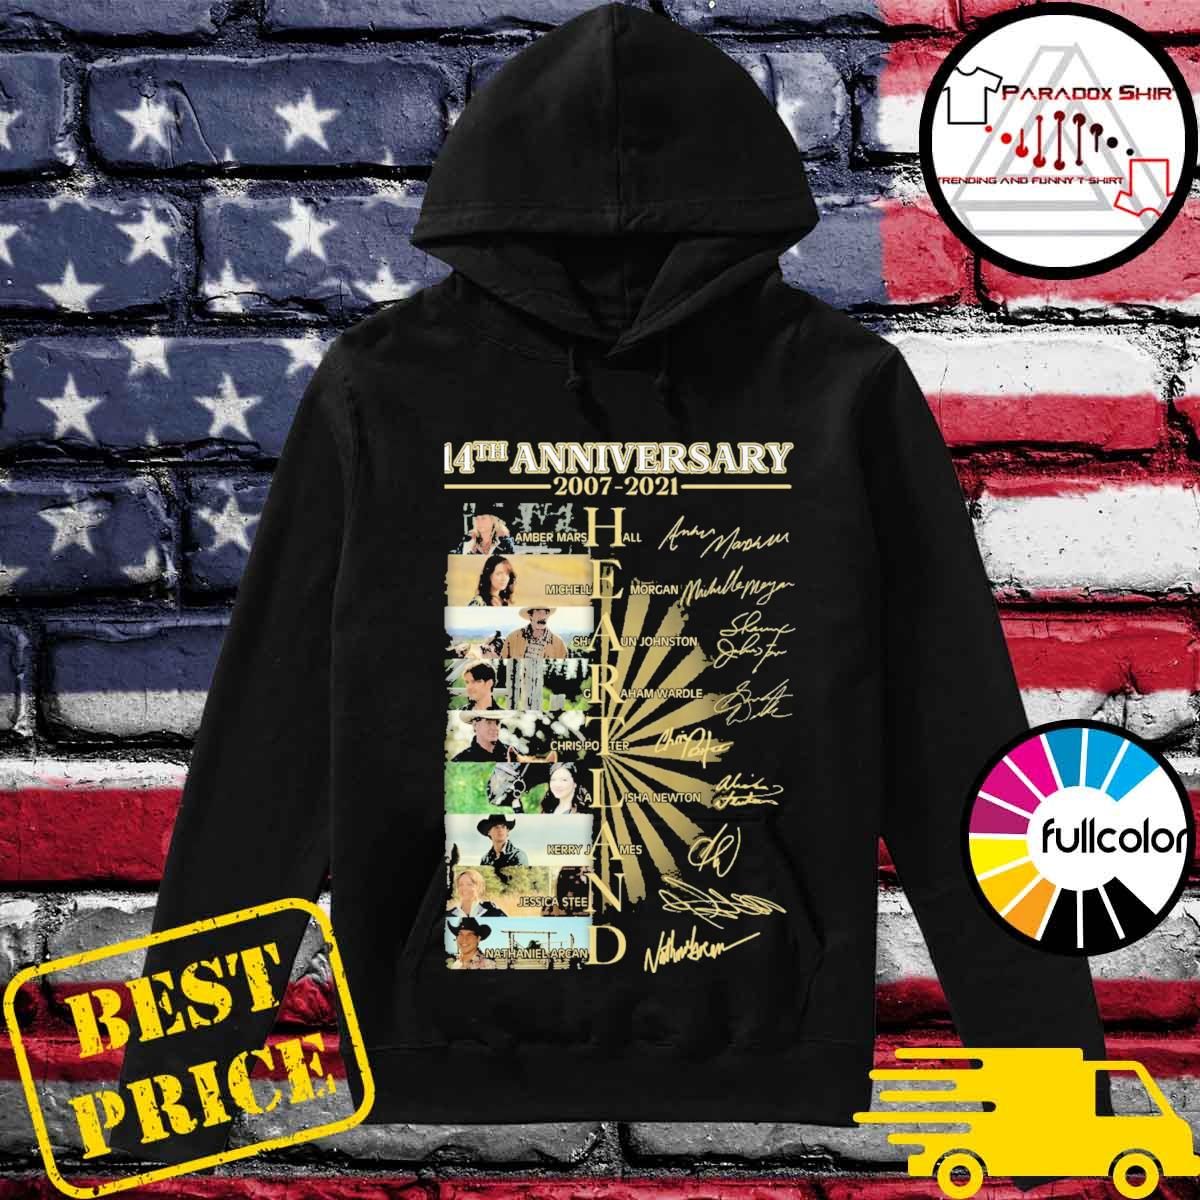 14th anniversary 2007 2021 Heartland signatures s Hoodie